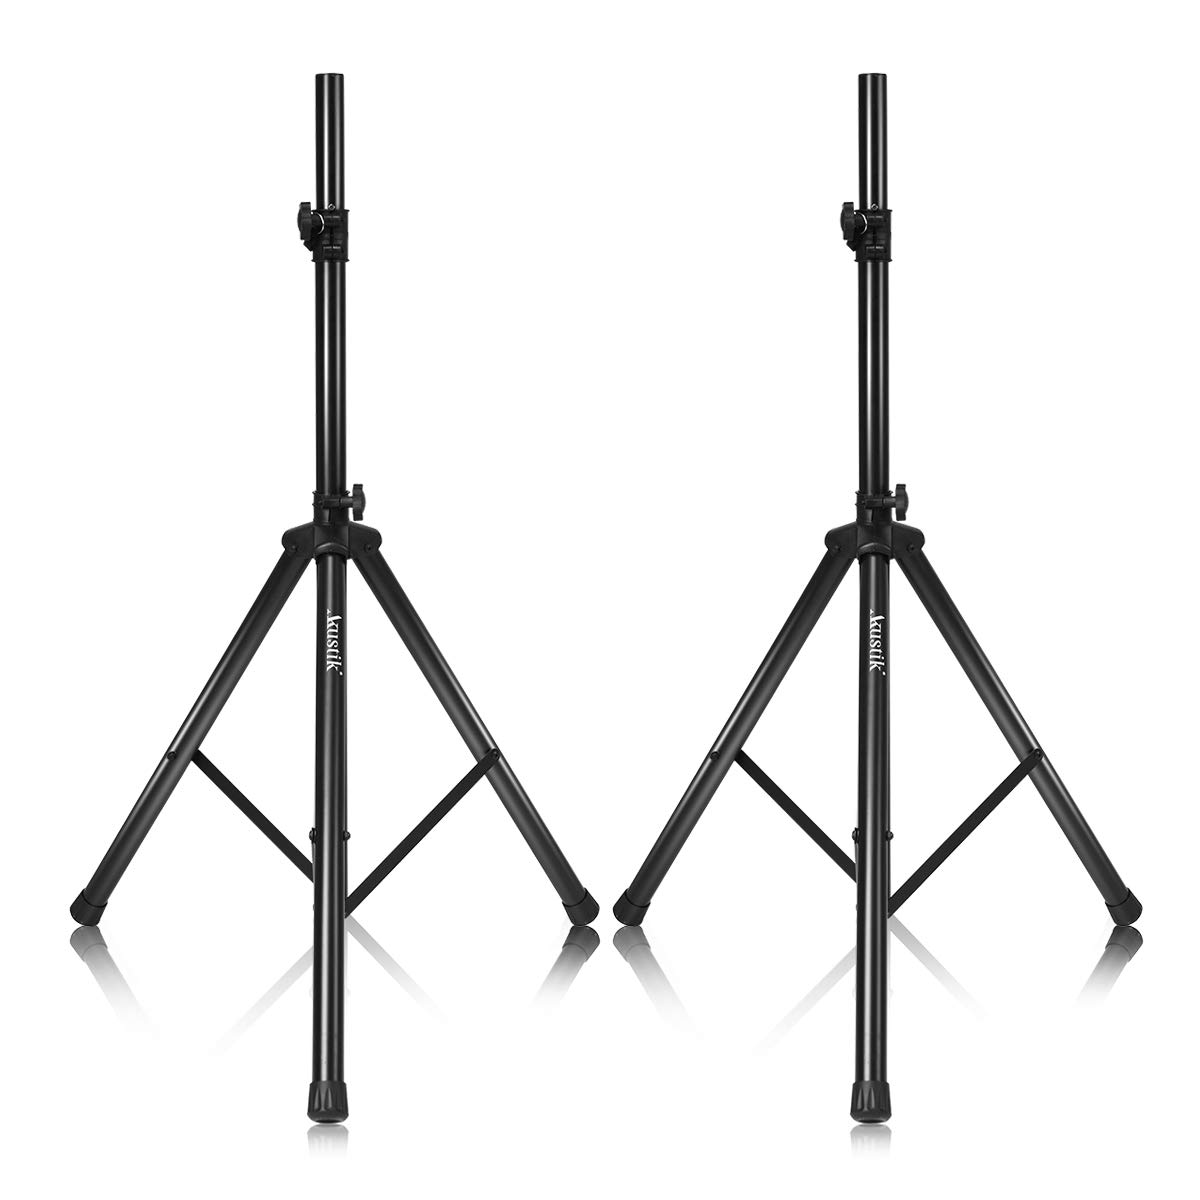 AKUSTIK Universal Speaker Stand with 37.5''-75'' Adjustable Height, 35MM Compatible Insert, 150lbs Weight Capacity, Safety Locking Knob & PIN, DJ PA Tripod Stand (Pair of (37.5''-75'')) by AKUSTIK